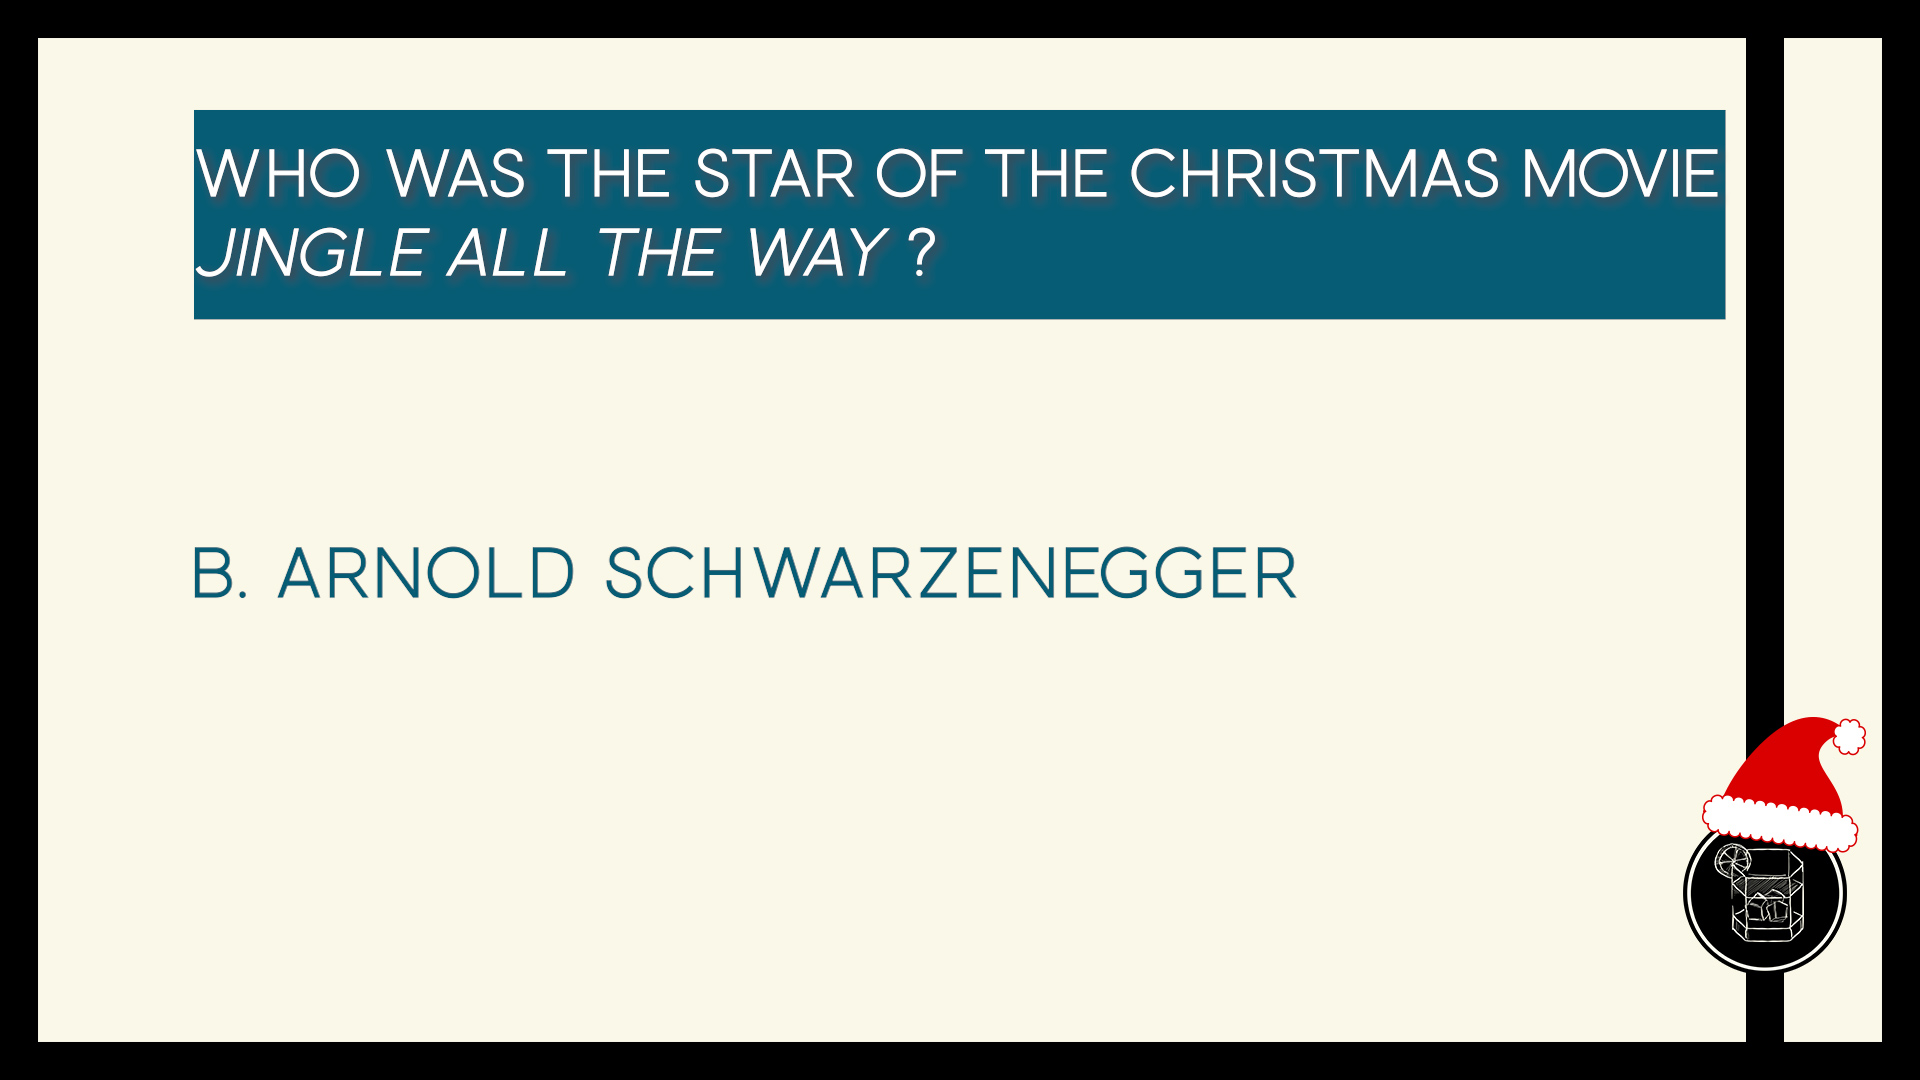 Who was the star of the Christmas movie Jingle All the Way ?